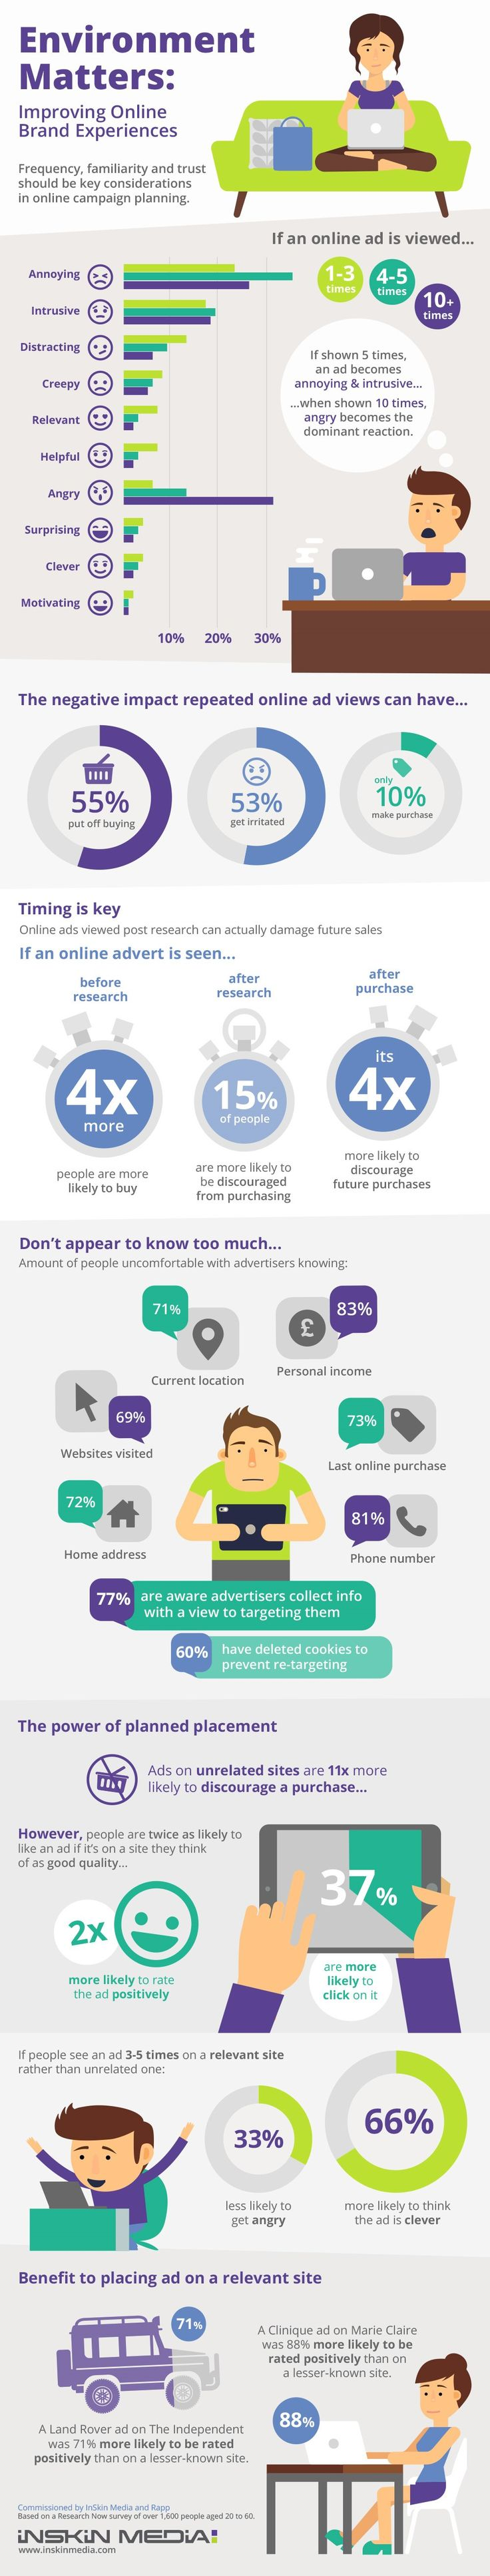 Infographic we designed for Inskin Media/Rapp about online advertising. #design #infographics #infographic